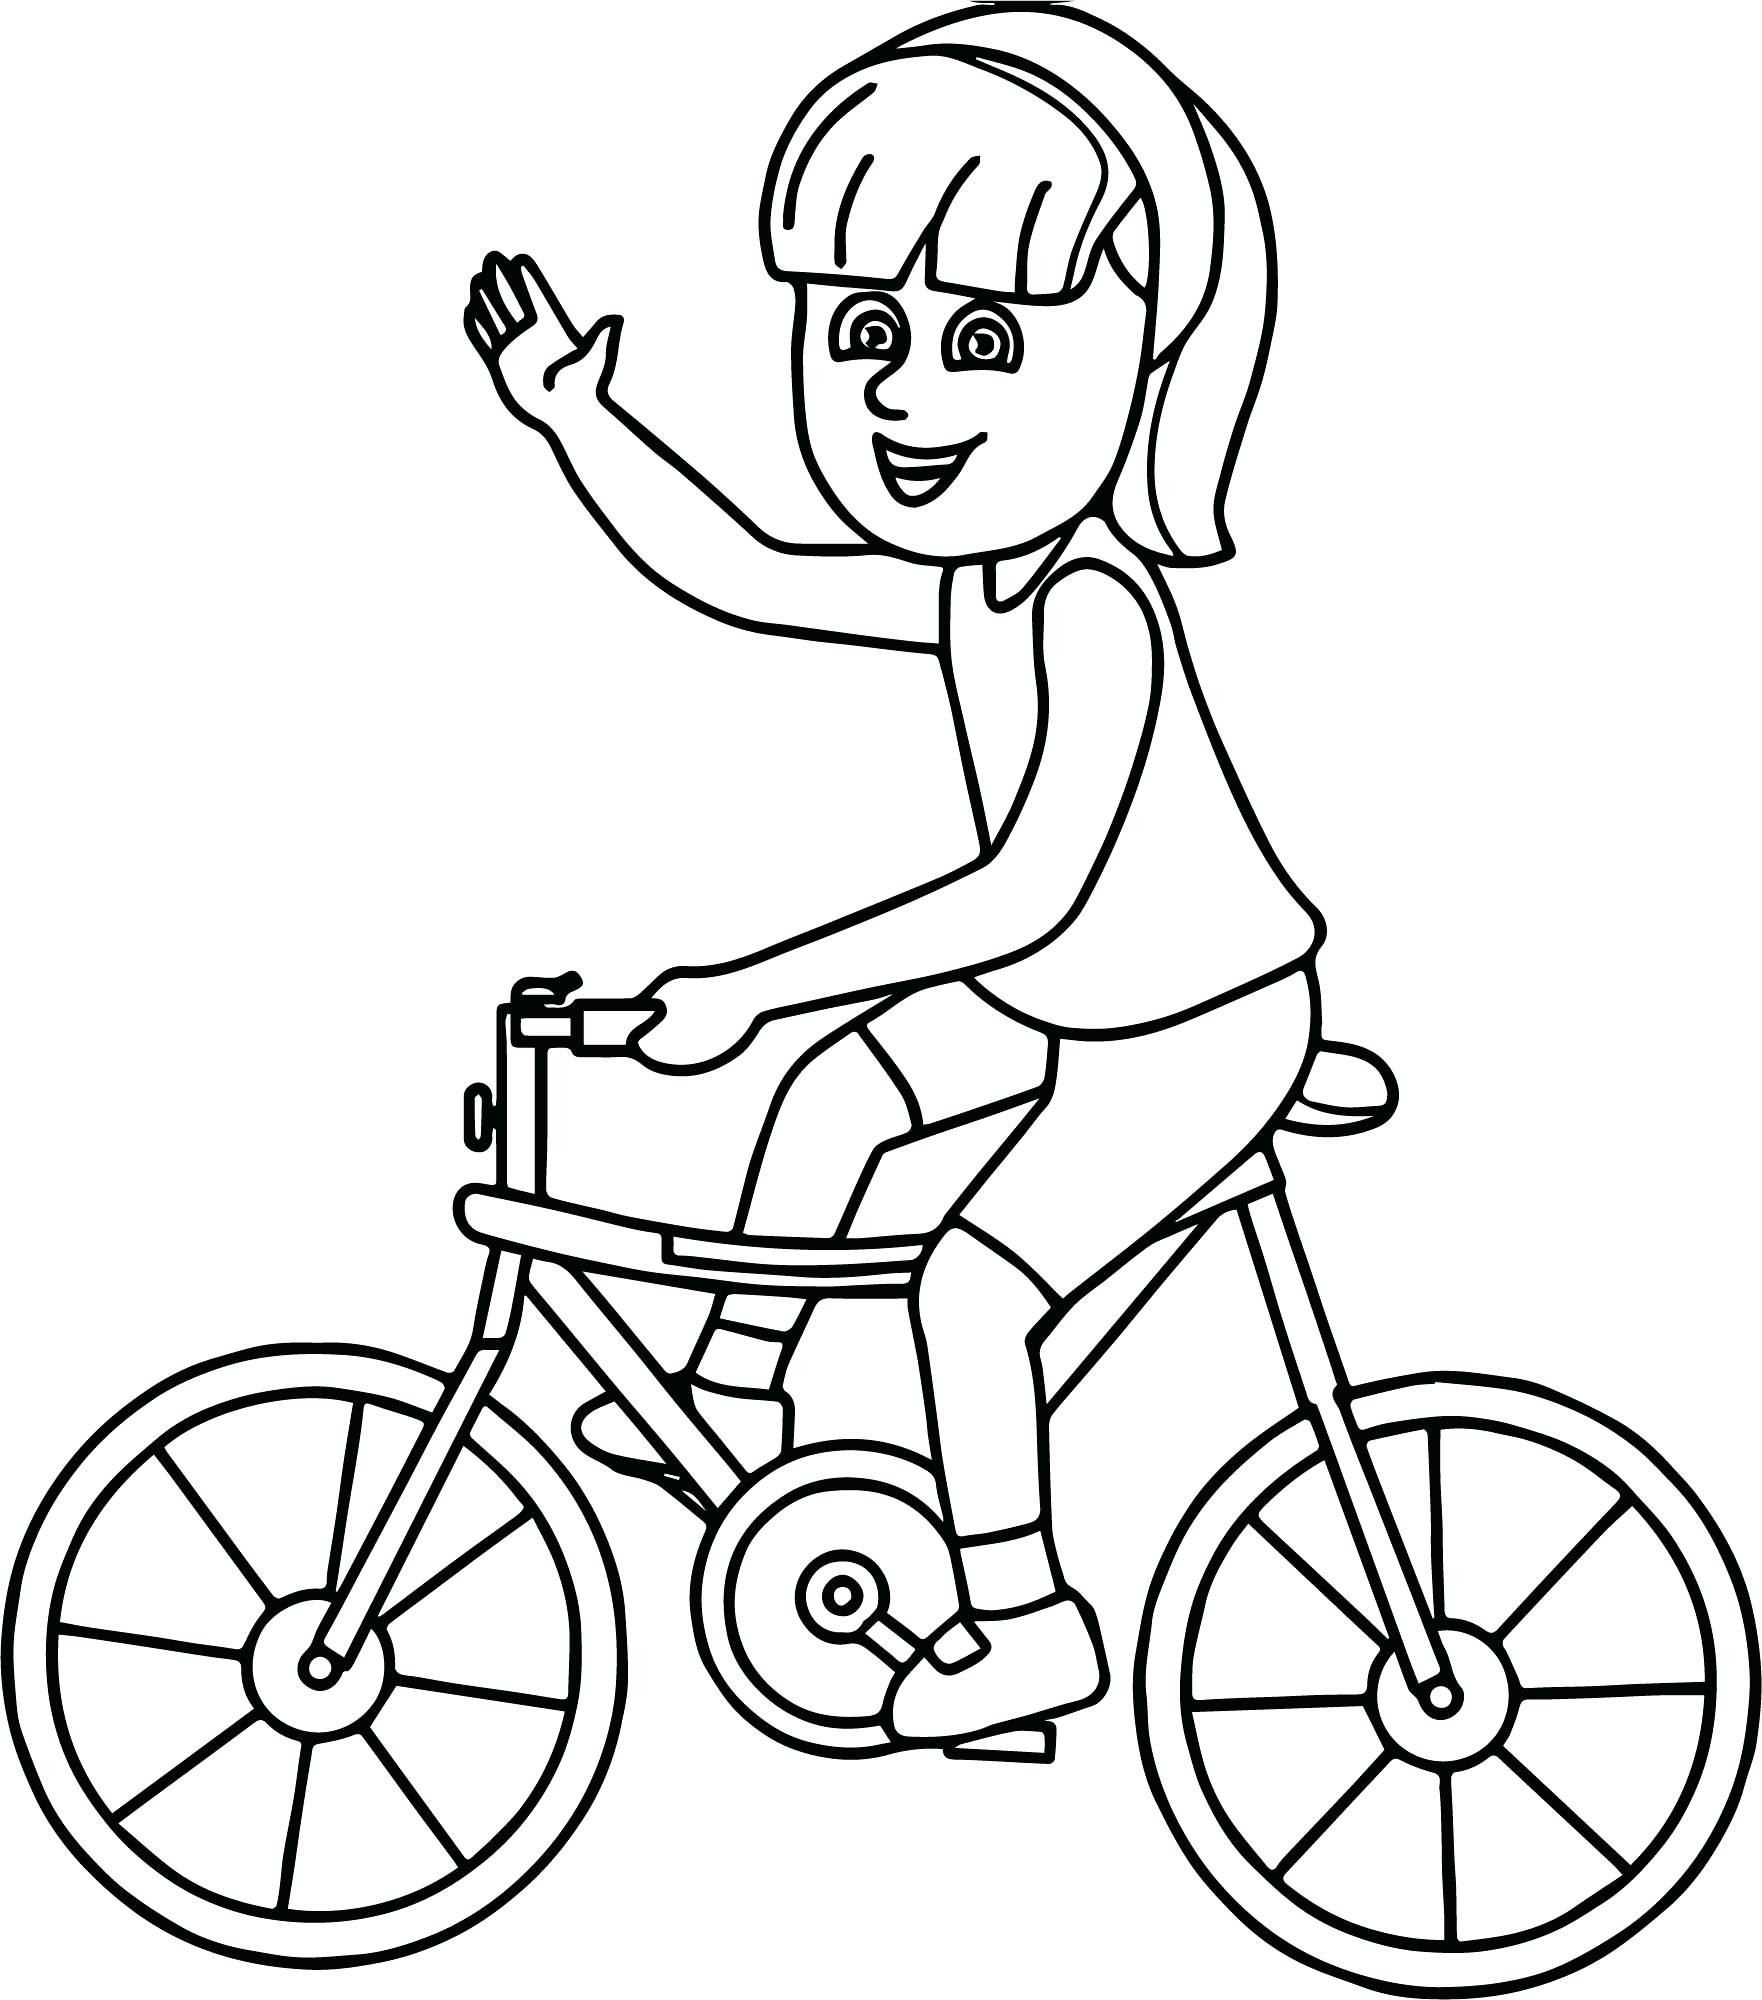 Motorcycle Coloring Pages 20 Luxury Dirt Bike Coloring Pages Of Motorcycle Coloring Page 15